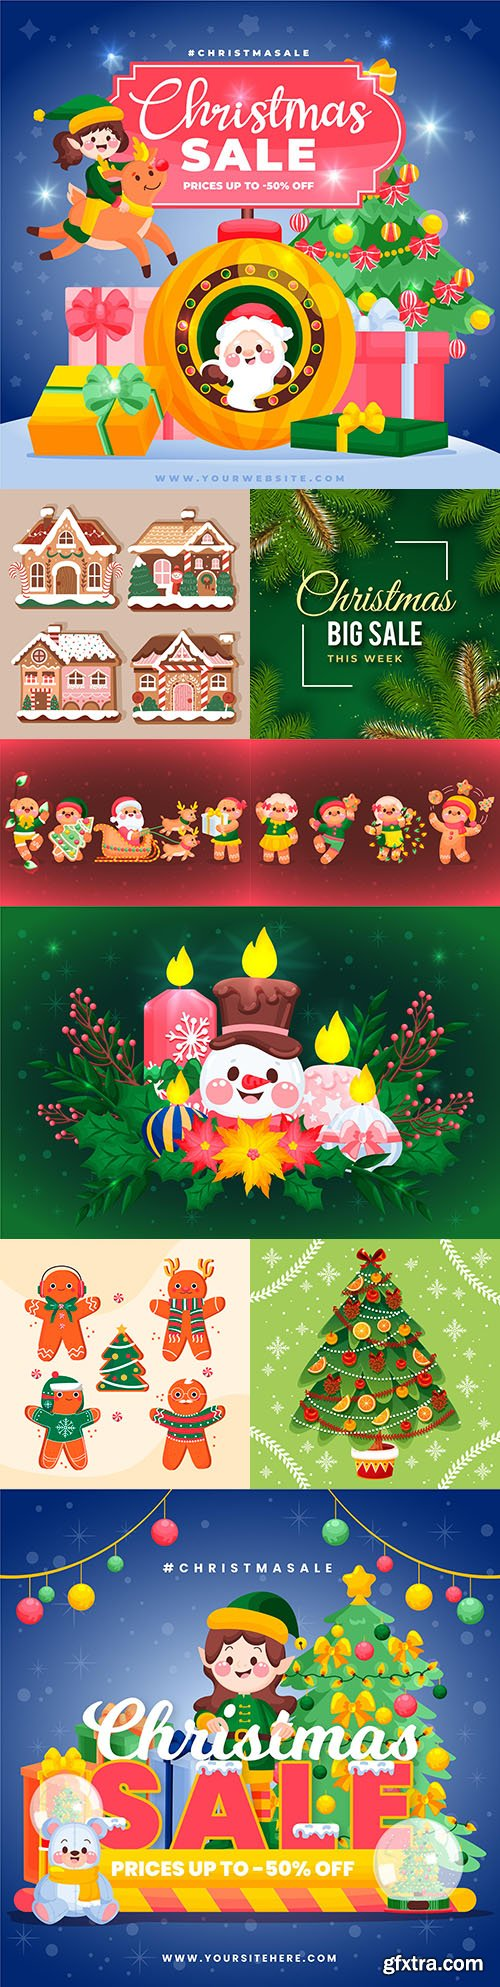 Christmas sales and New Year design elements illustration